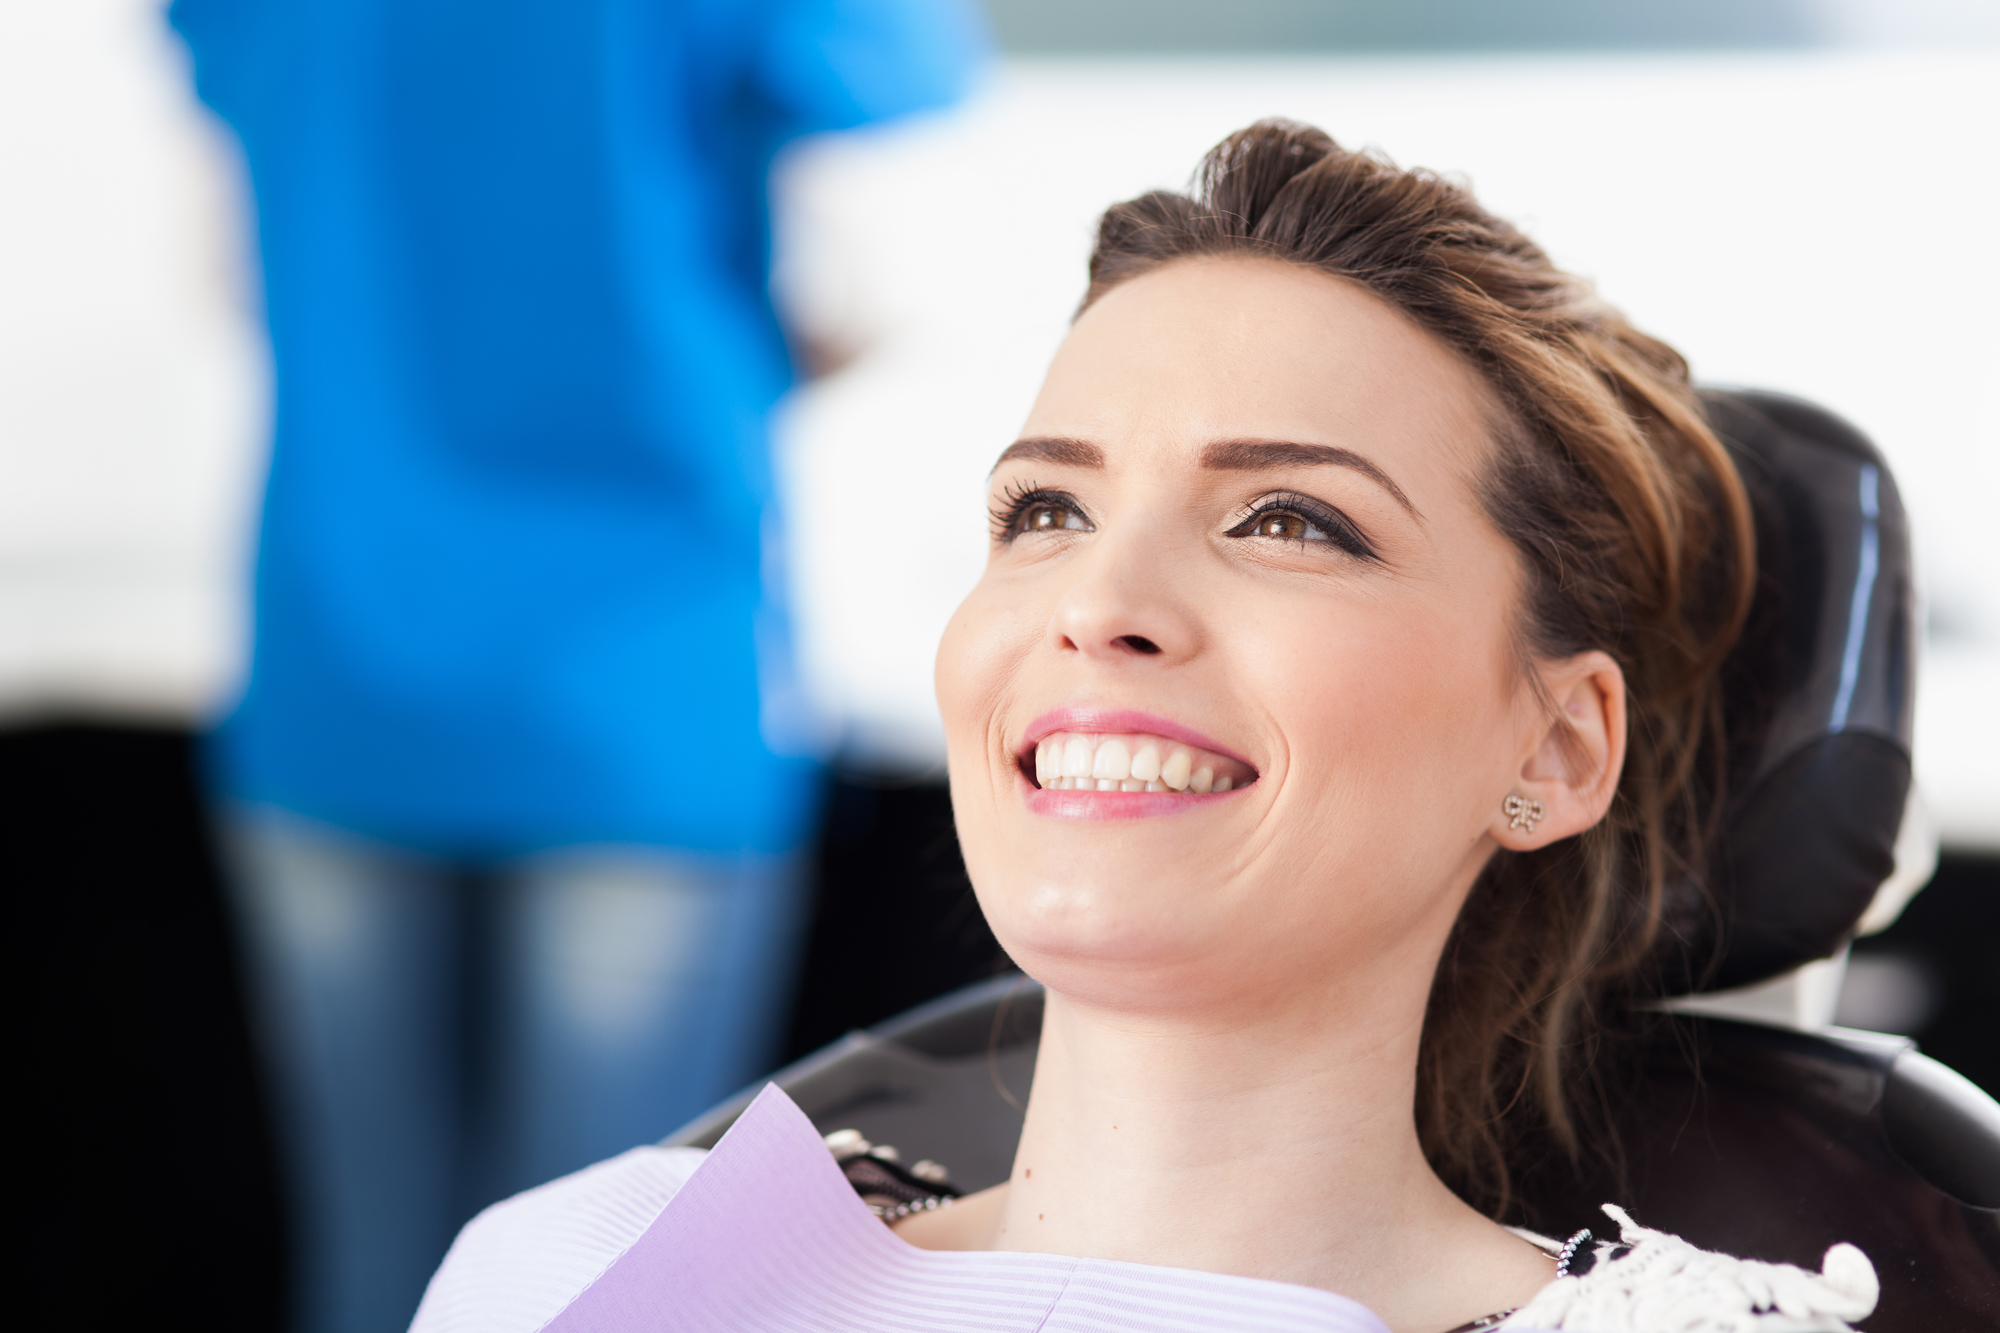 where are the best tooth extraction west palm beach?